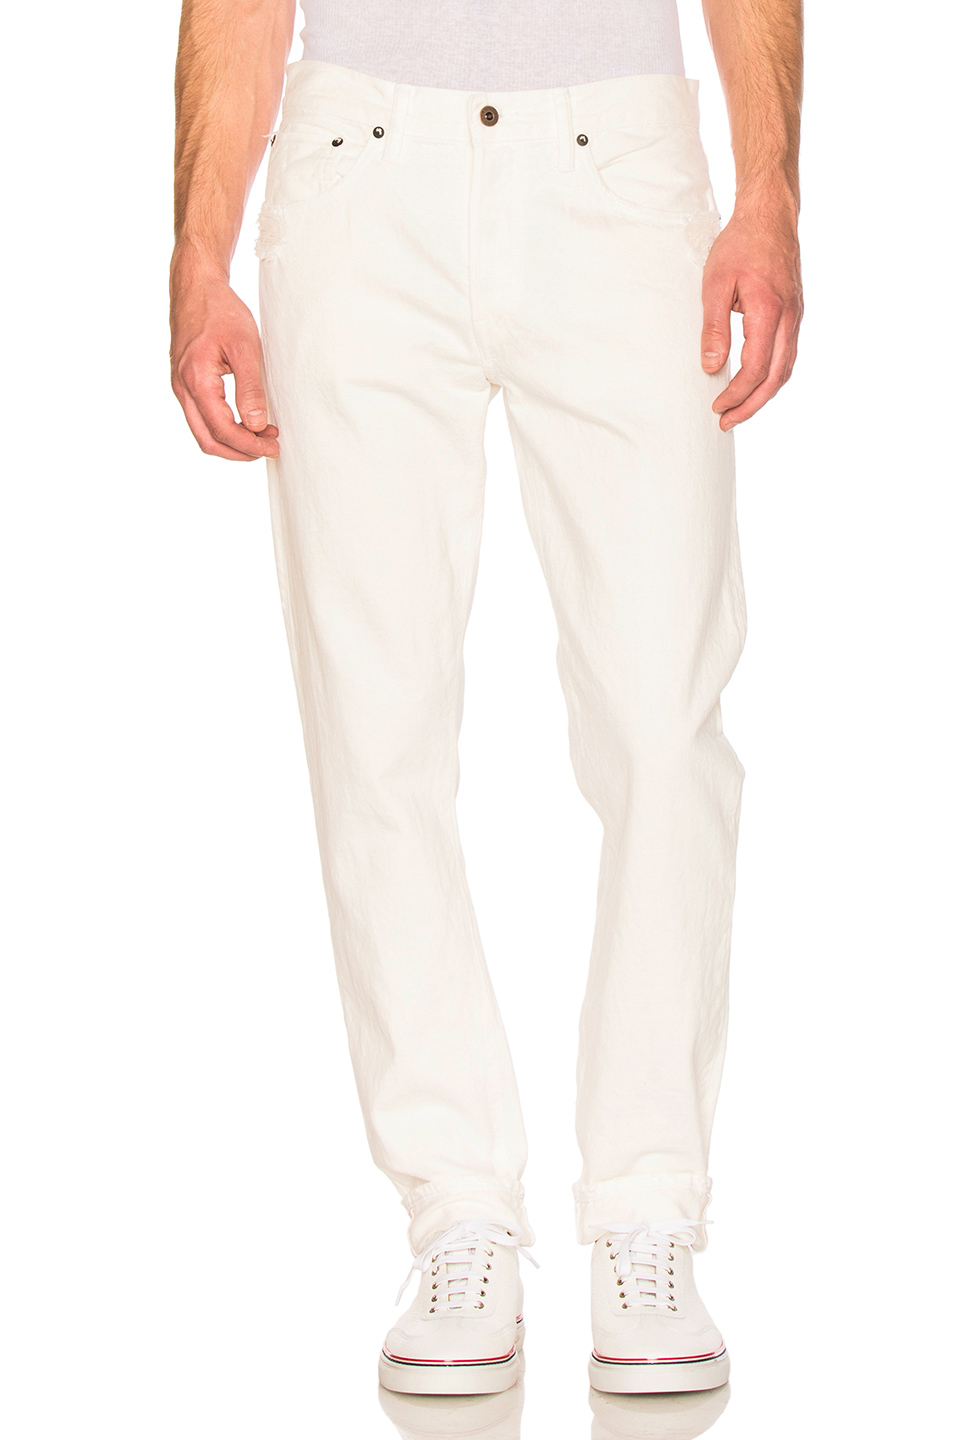 Simon Miller Wayne Jeans in White